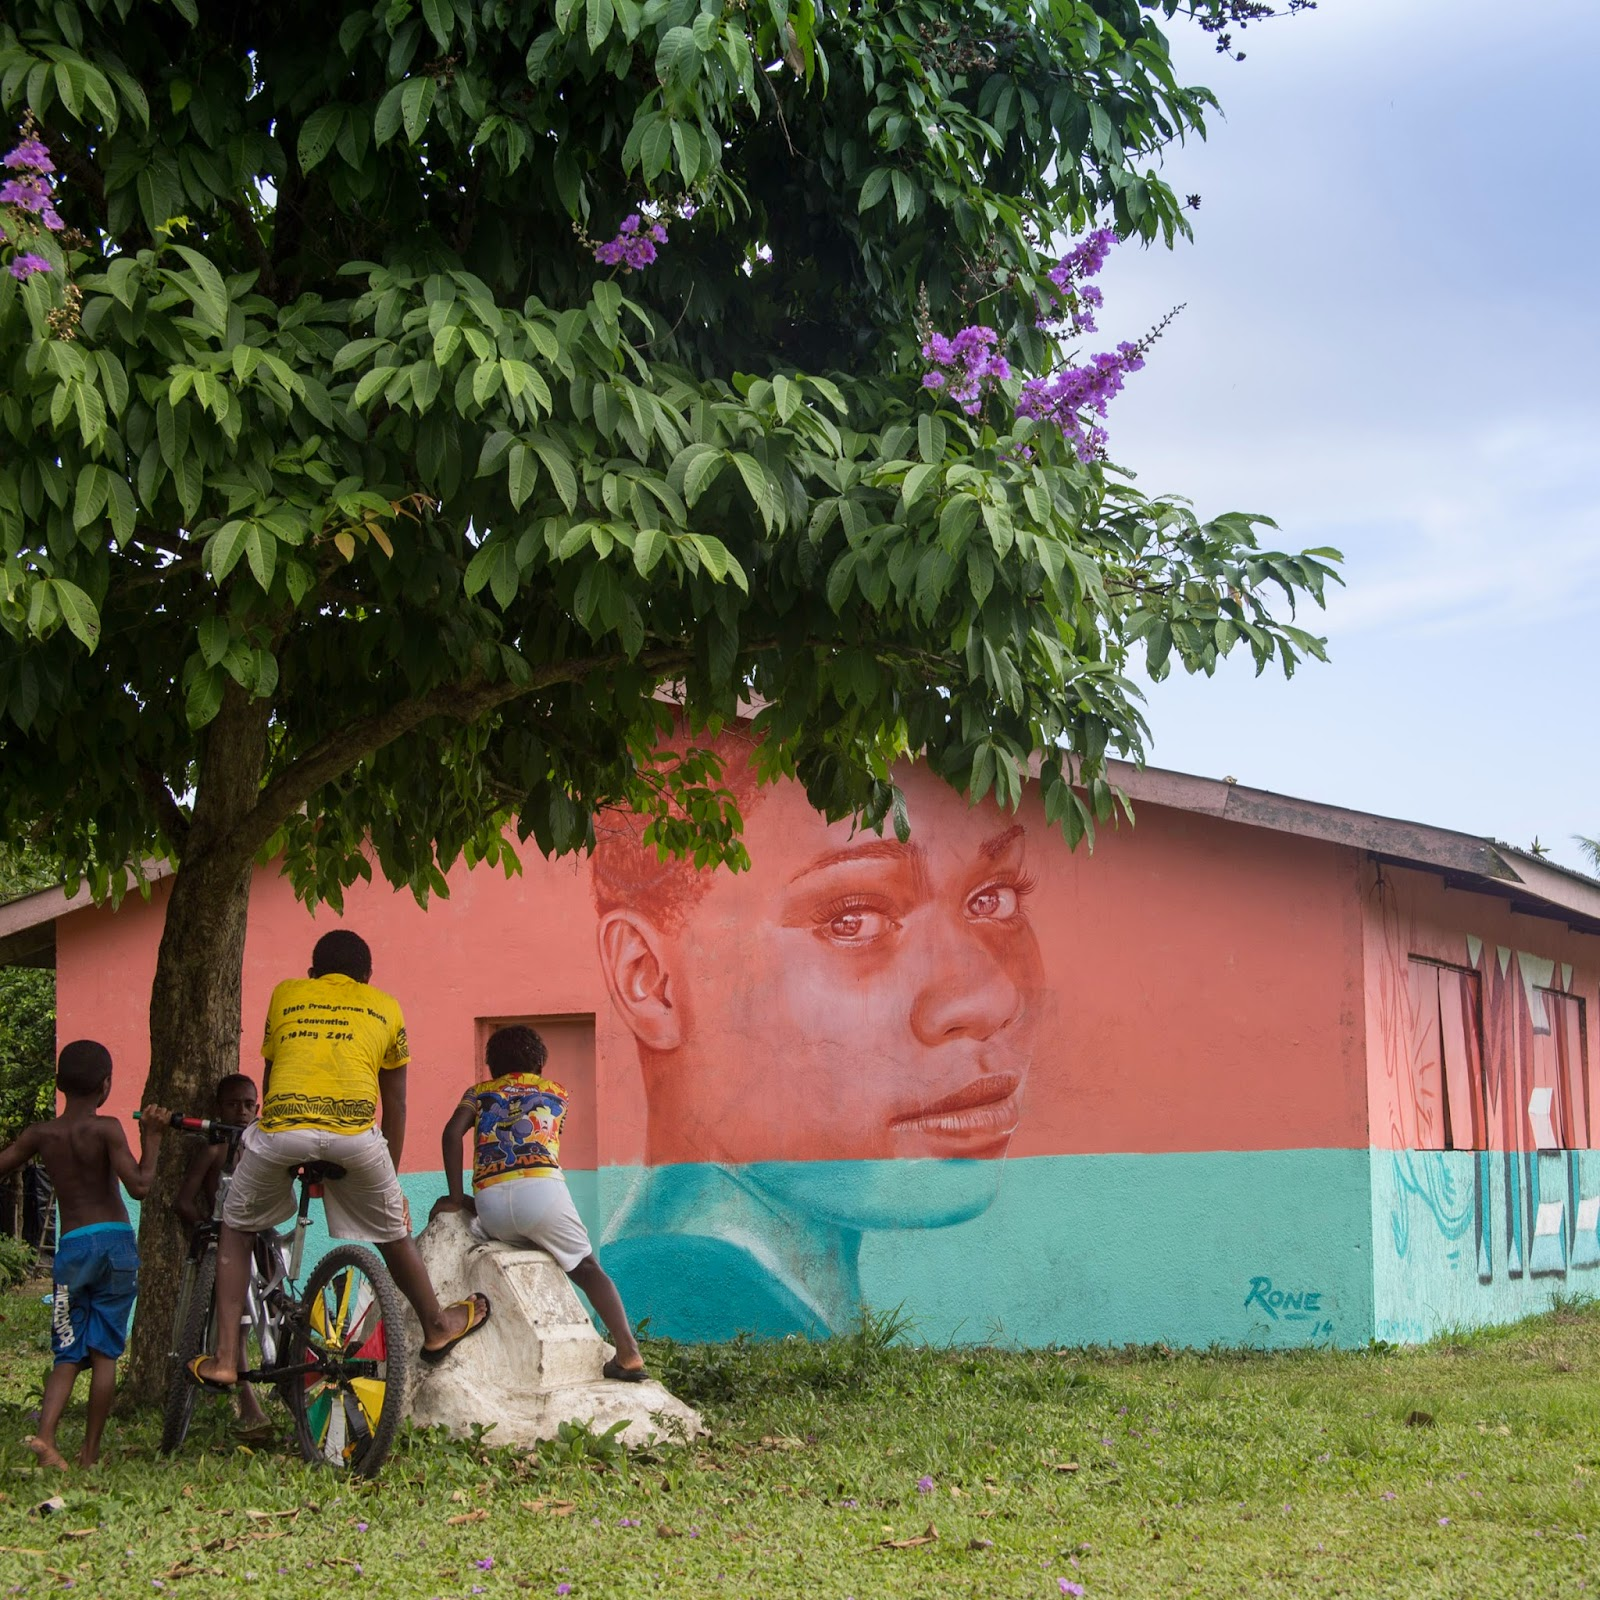 rone-callum-preston-new-mural-in-vanuatu-02